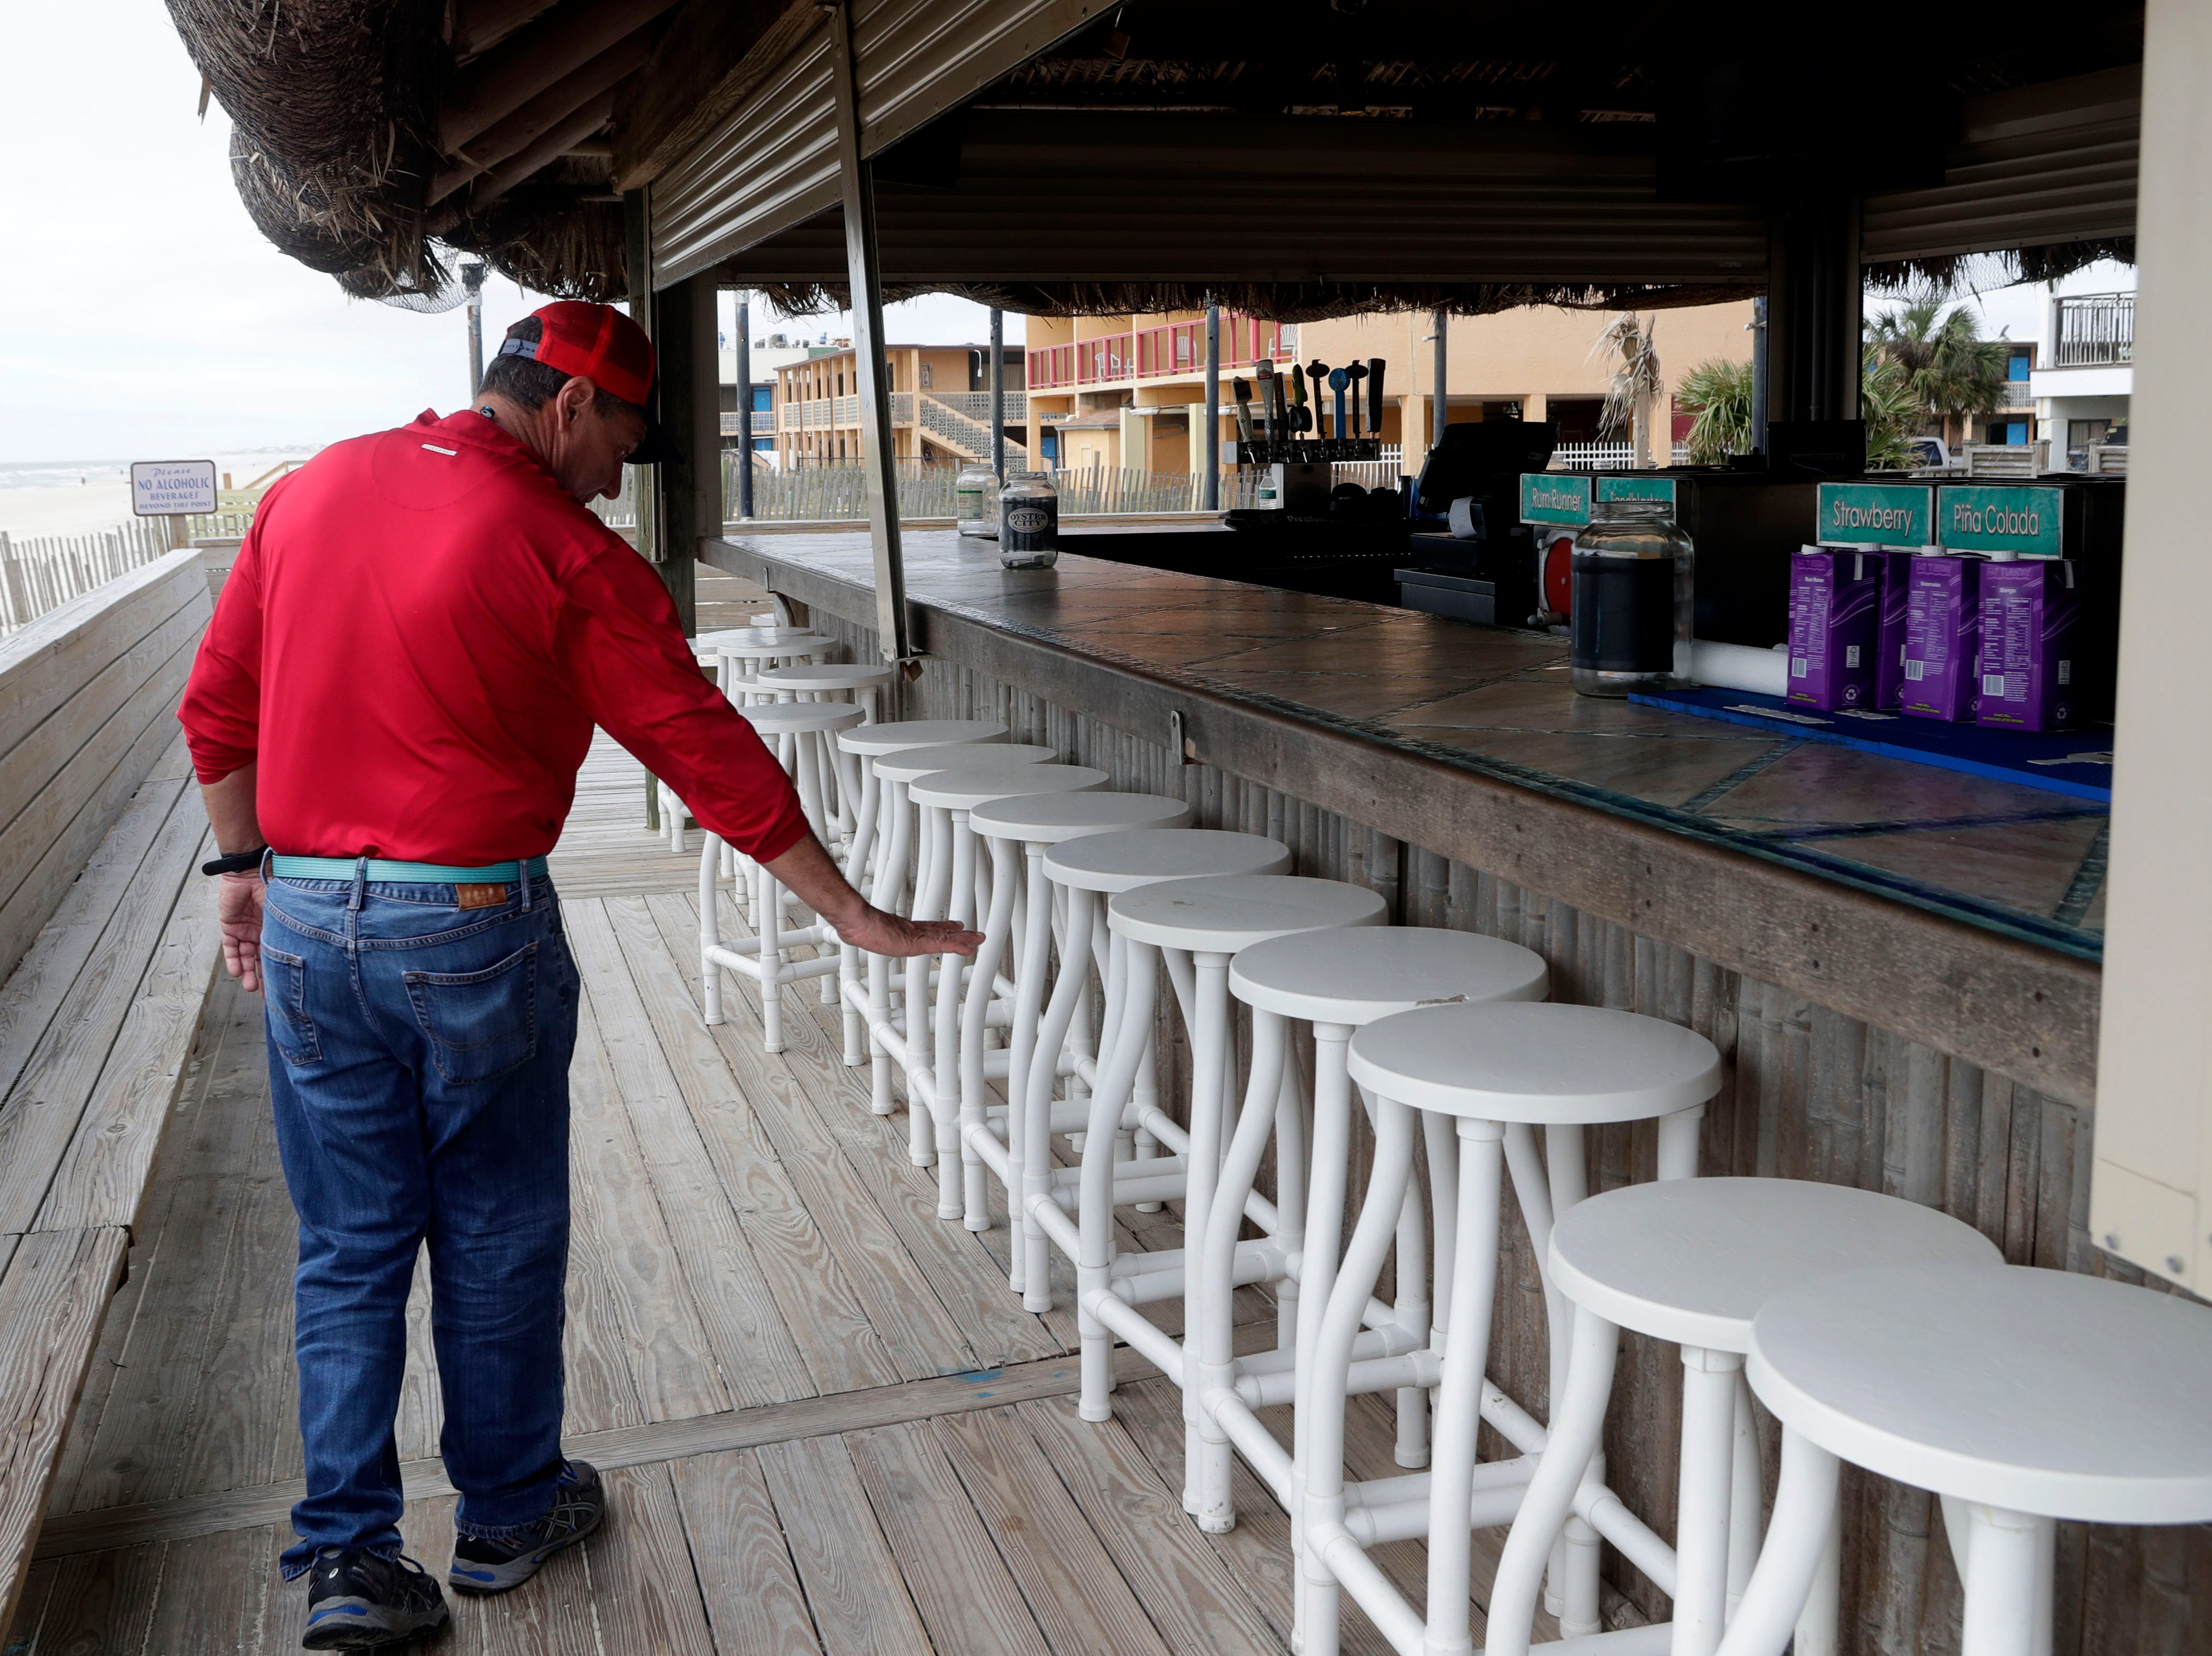 George Joanos, part owner of the Blue Parrot Ocean front Cafe on St. George Island, Fla., shows how high the water came during Hurricane Michael in Oct. 2018.